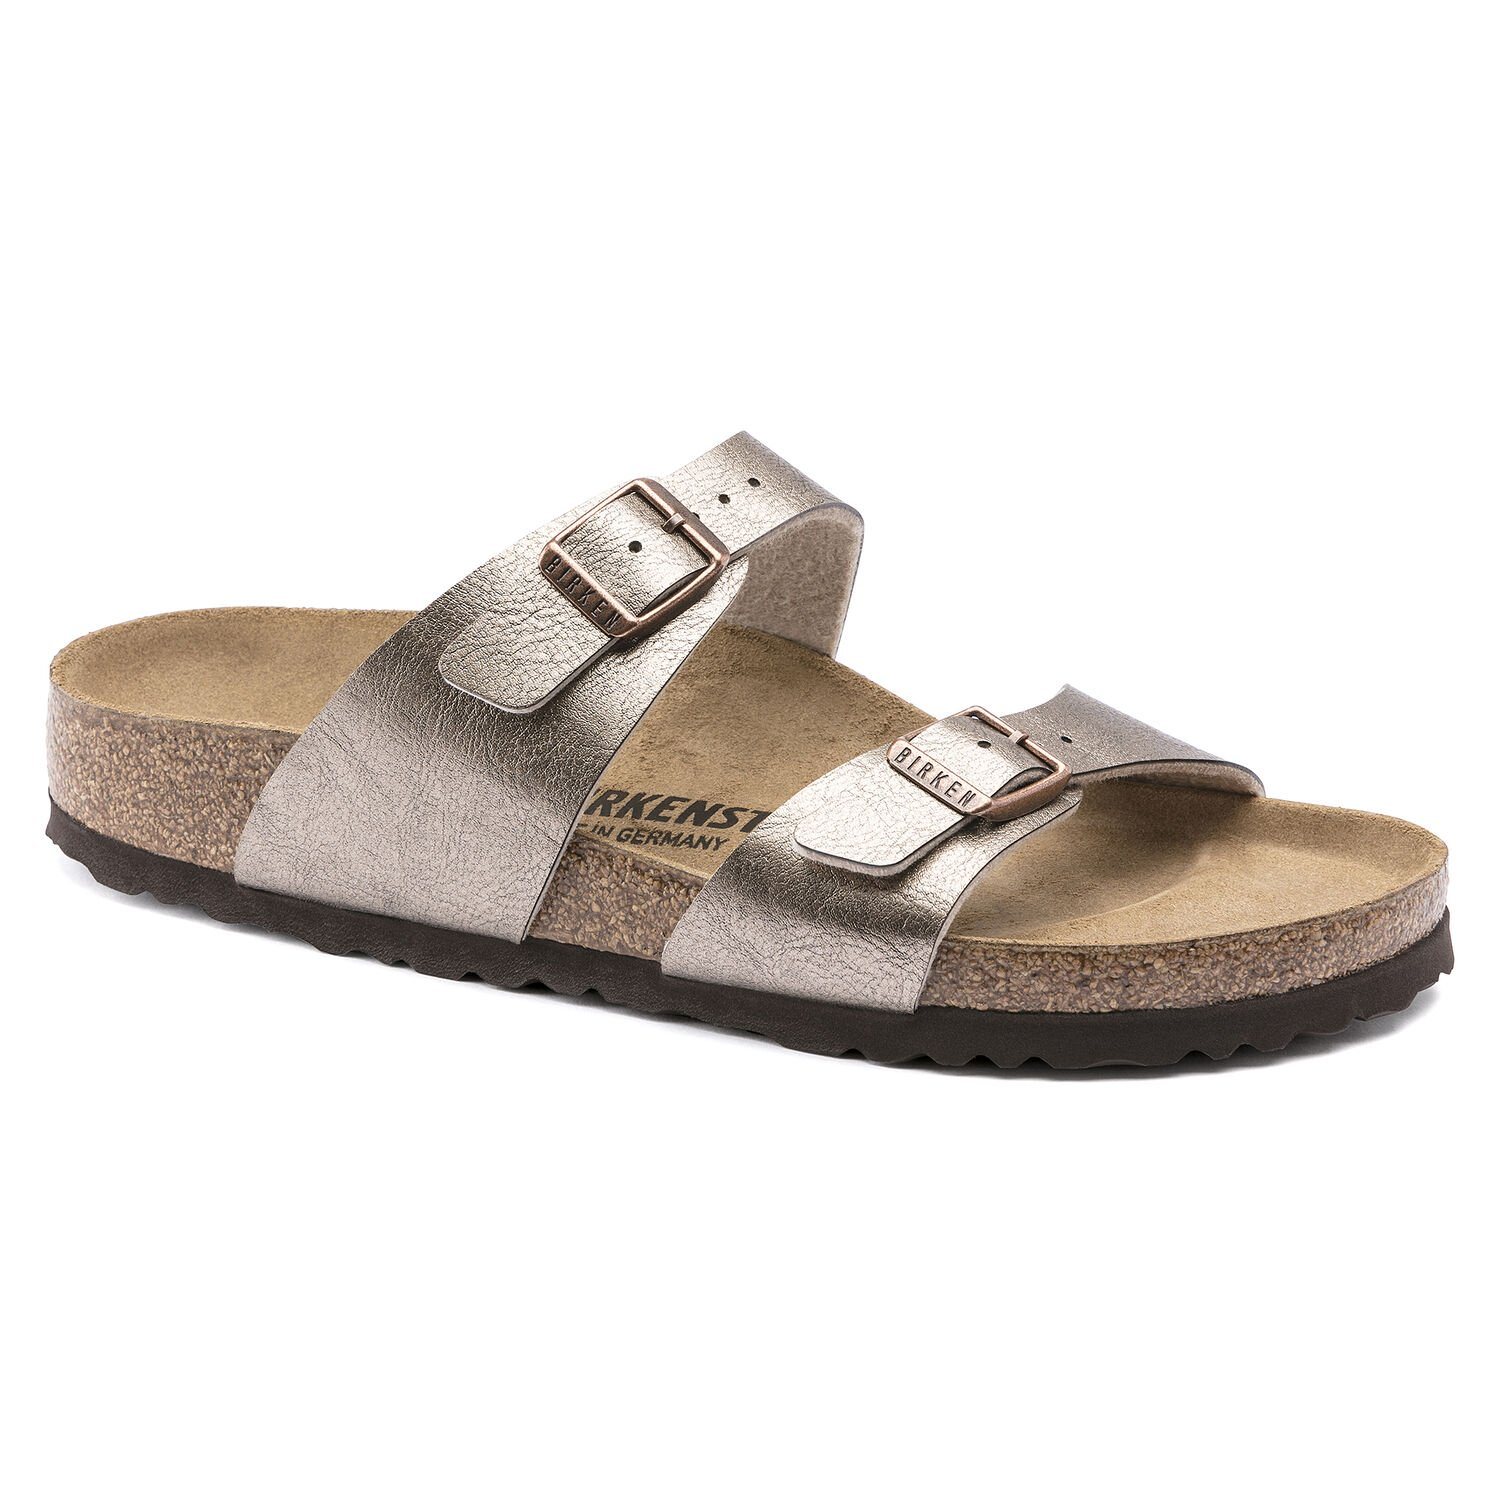 Berwick upon Tweed-Lime Shoe Co-Birkenstock-Sydney-Taupe-Sandal-Double Strap-Buckle-Sandal-Summer